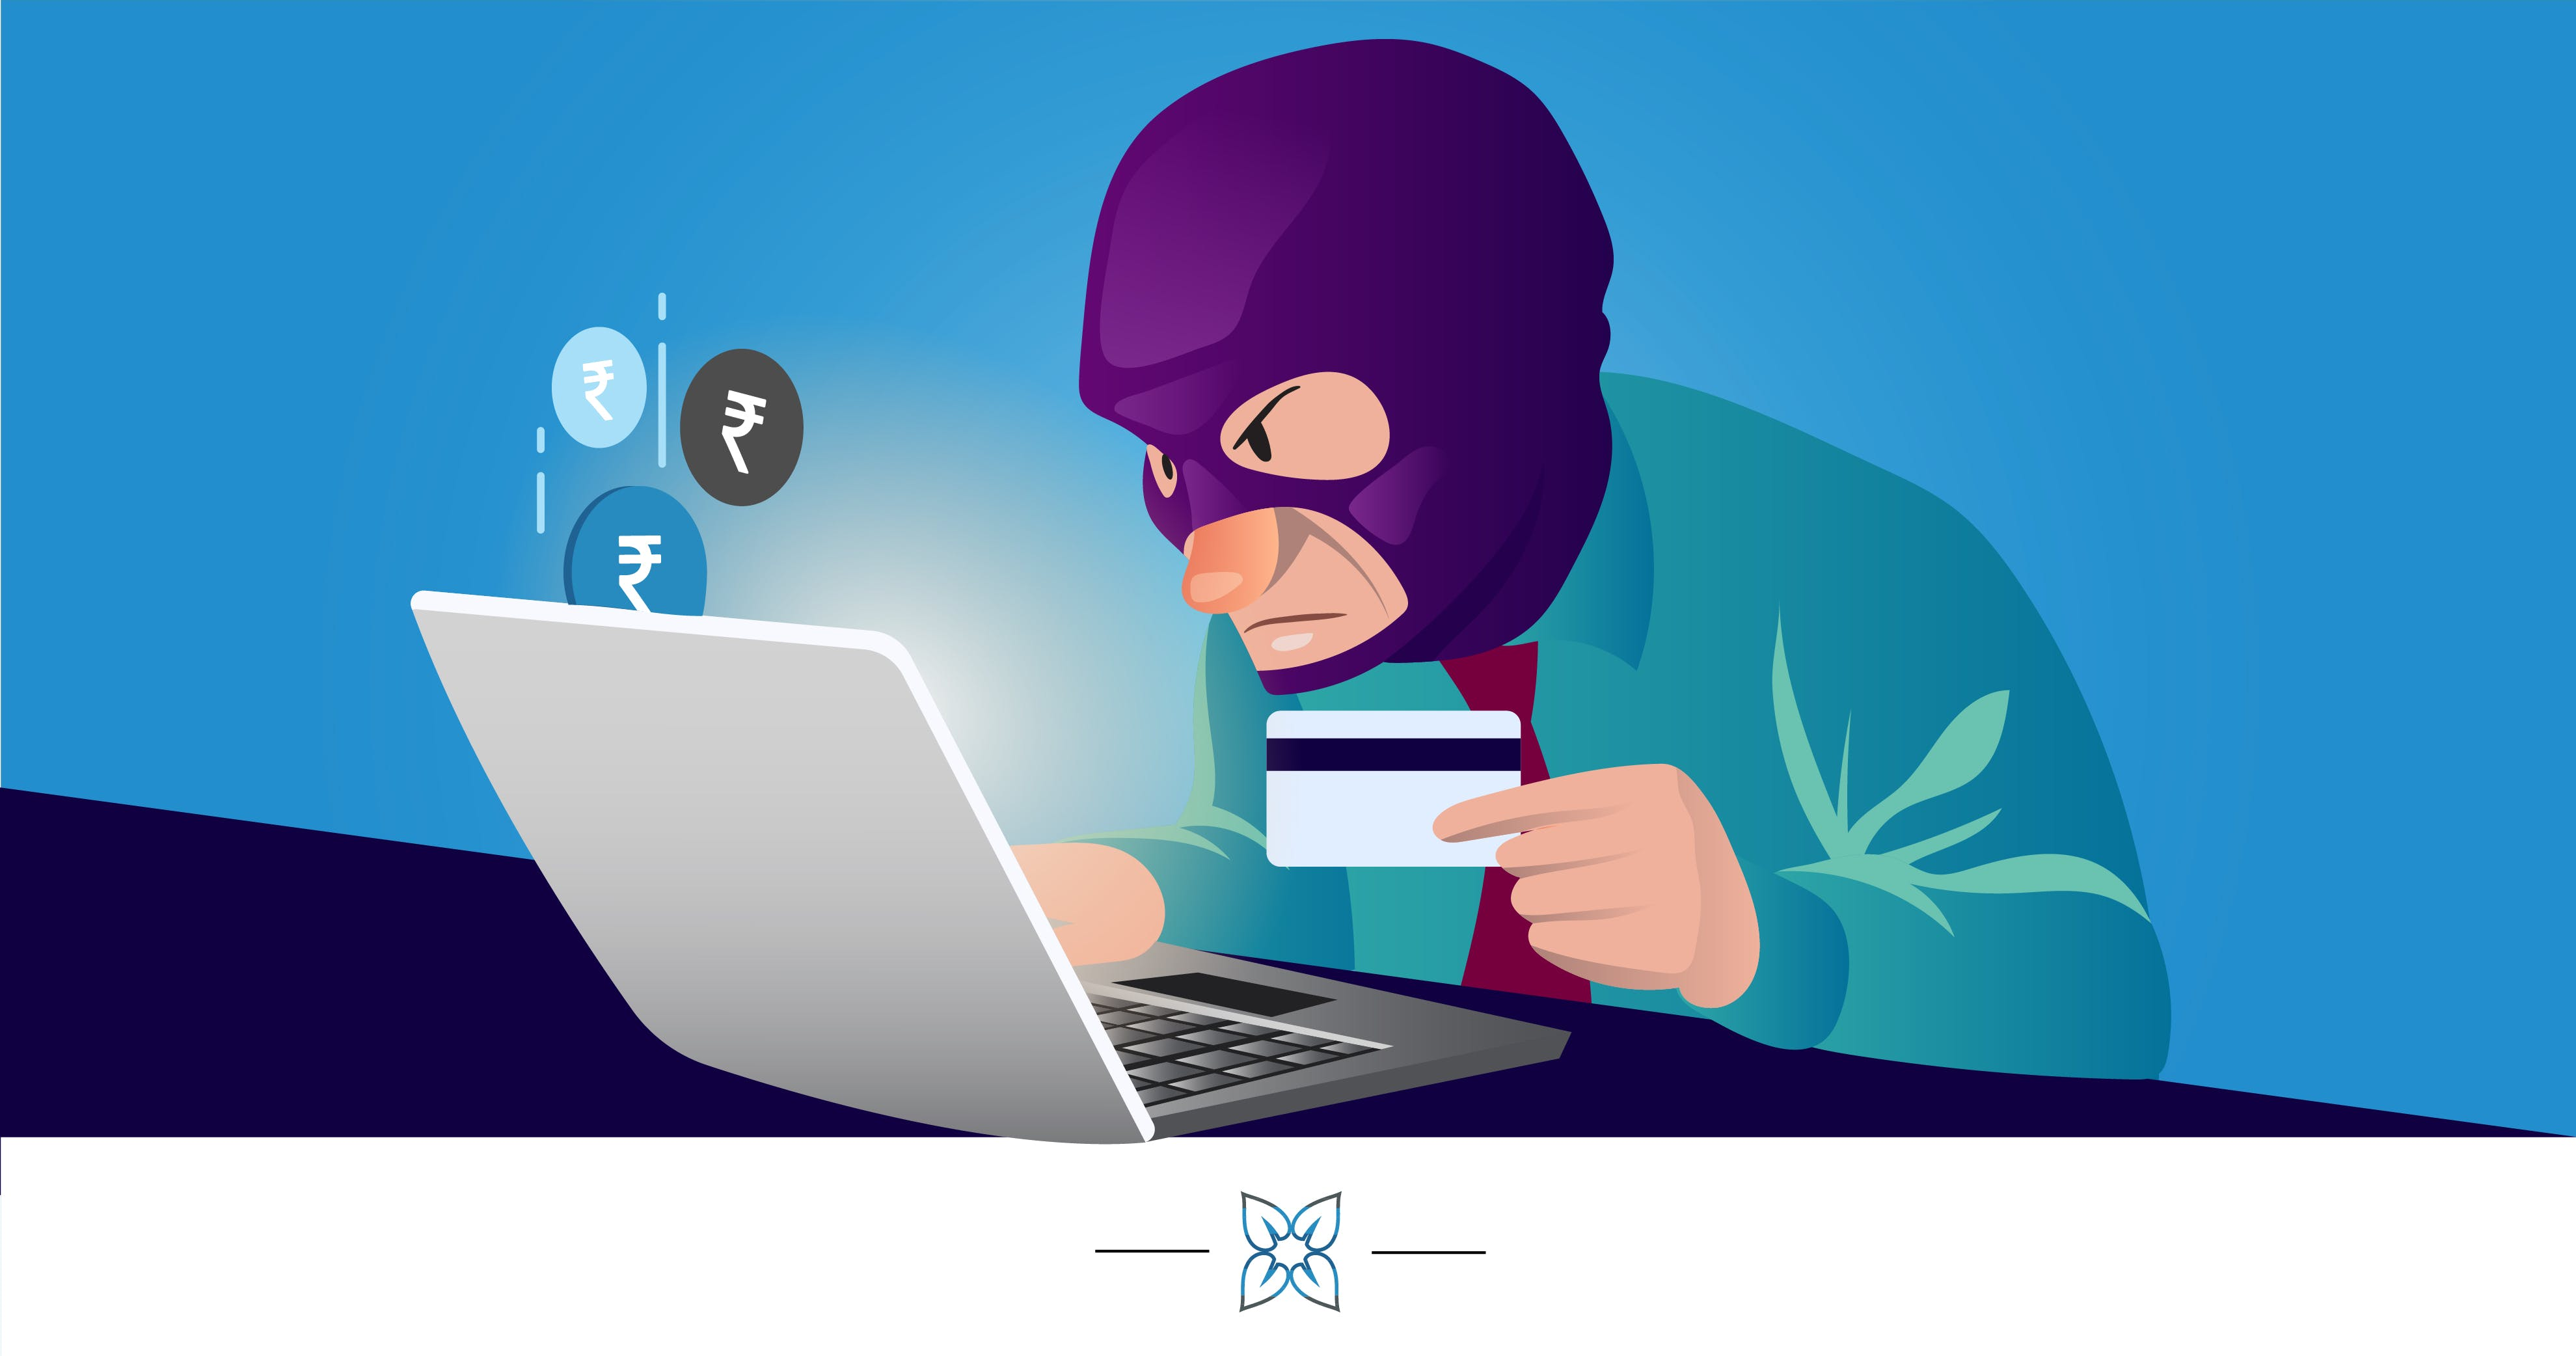 How To Protect Against Identity Theft And Fraud